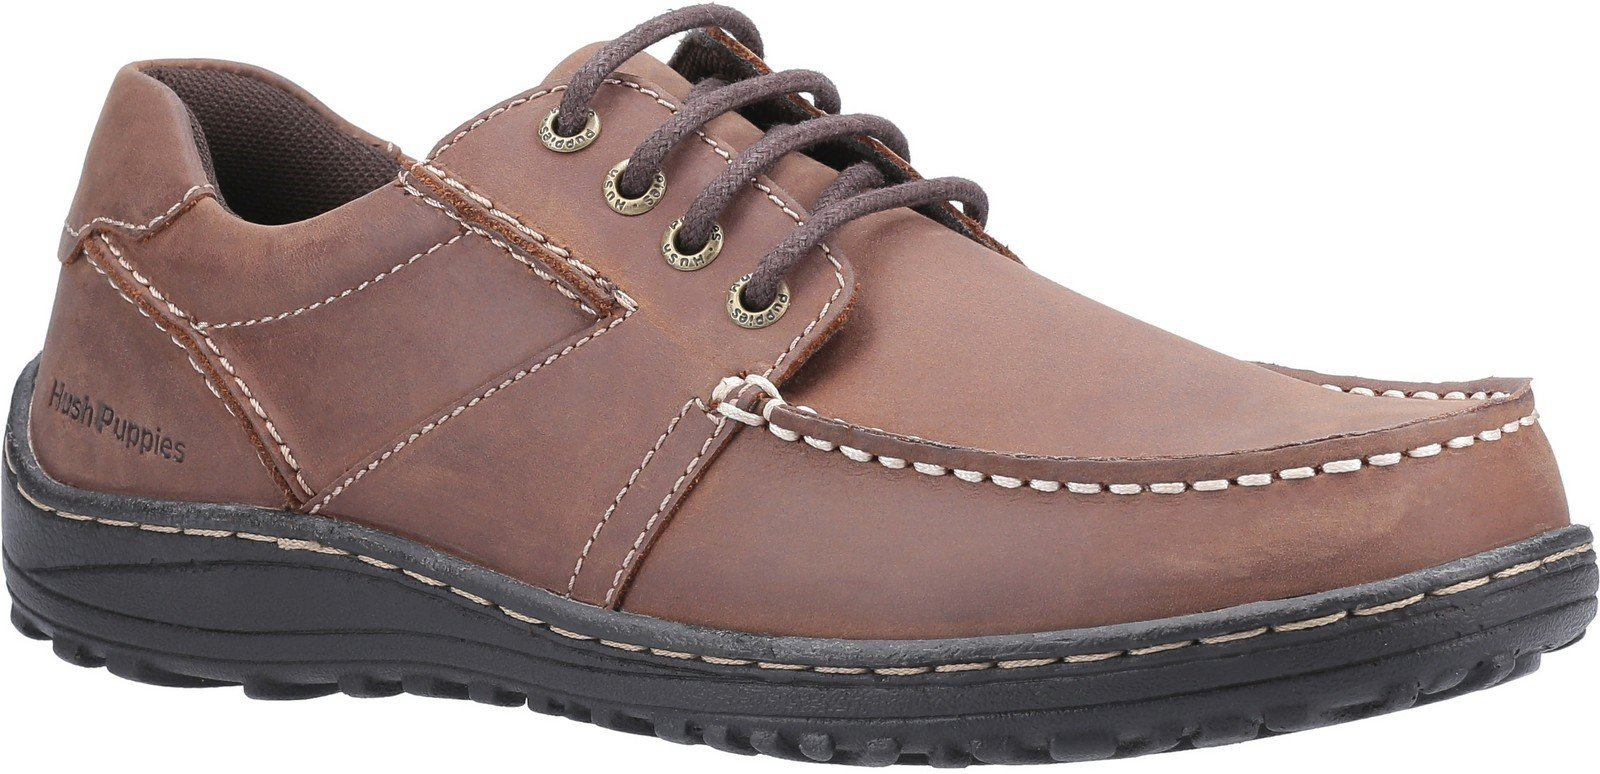 Hush Puppies Men's Theo Lace Up Moccasin Various Colours 30212 - Brown 6